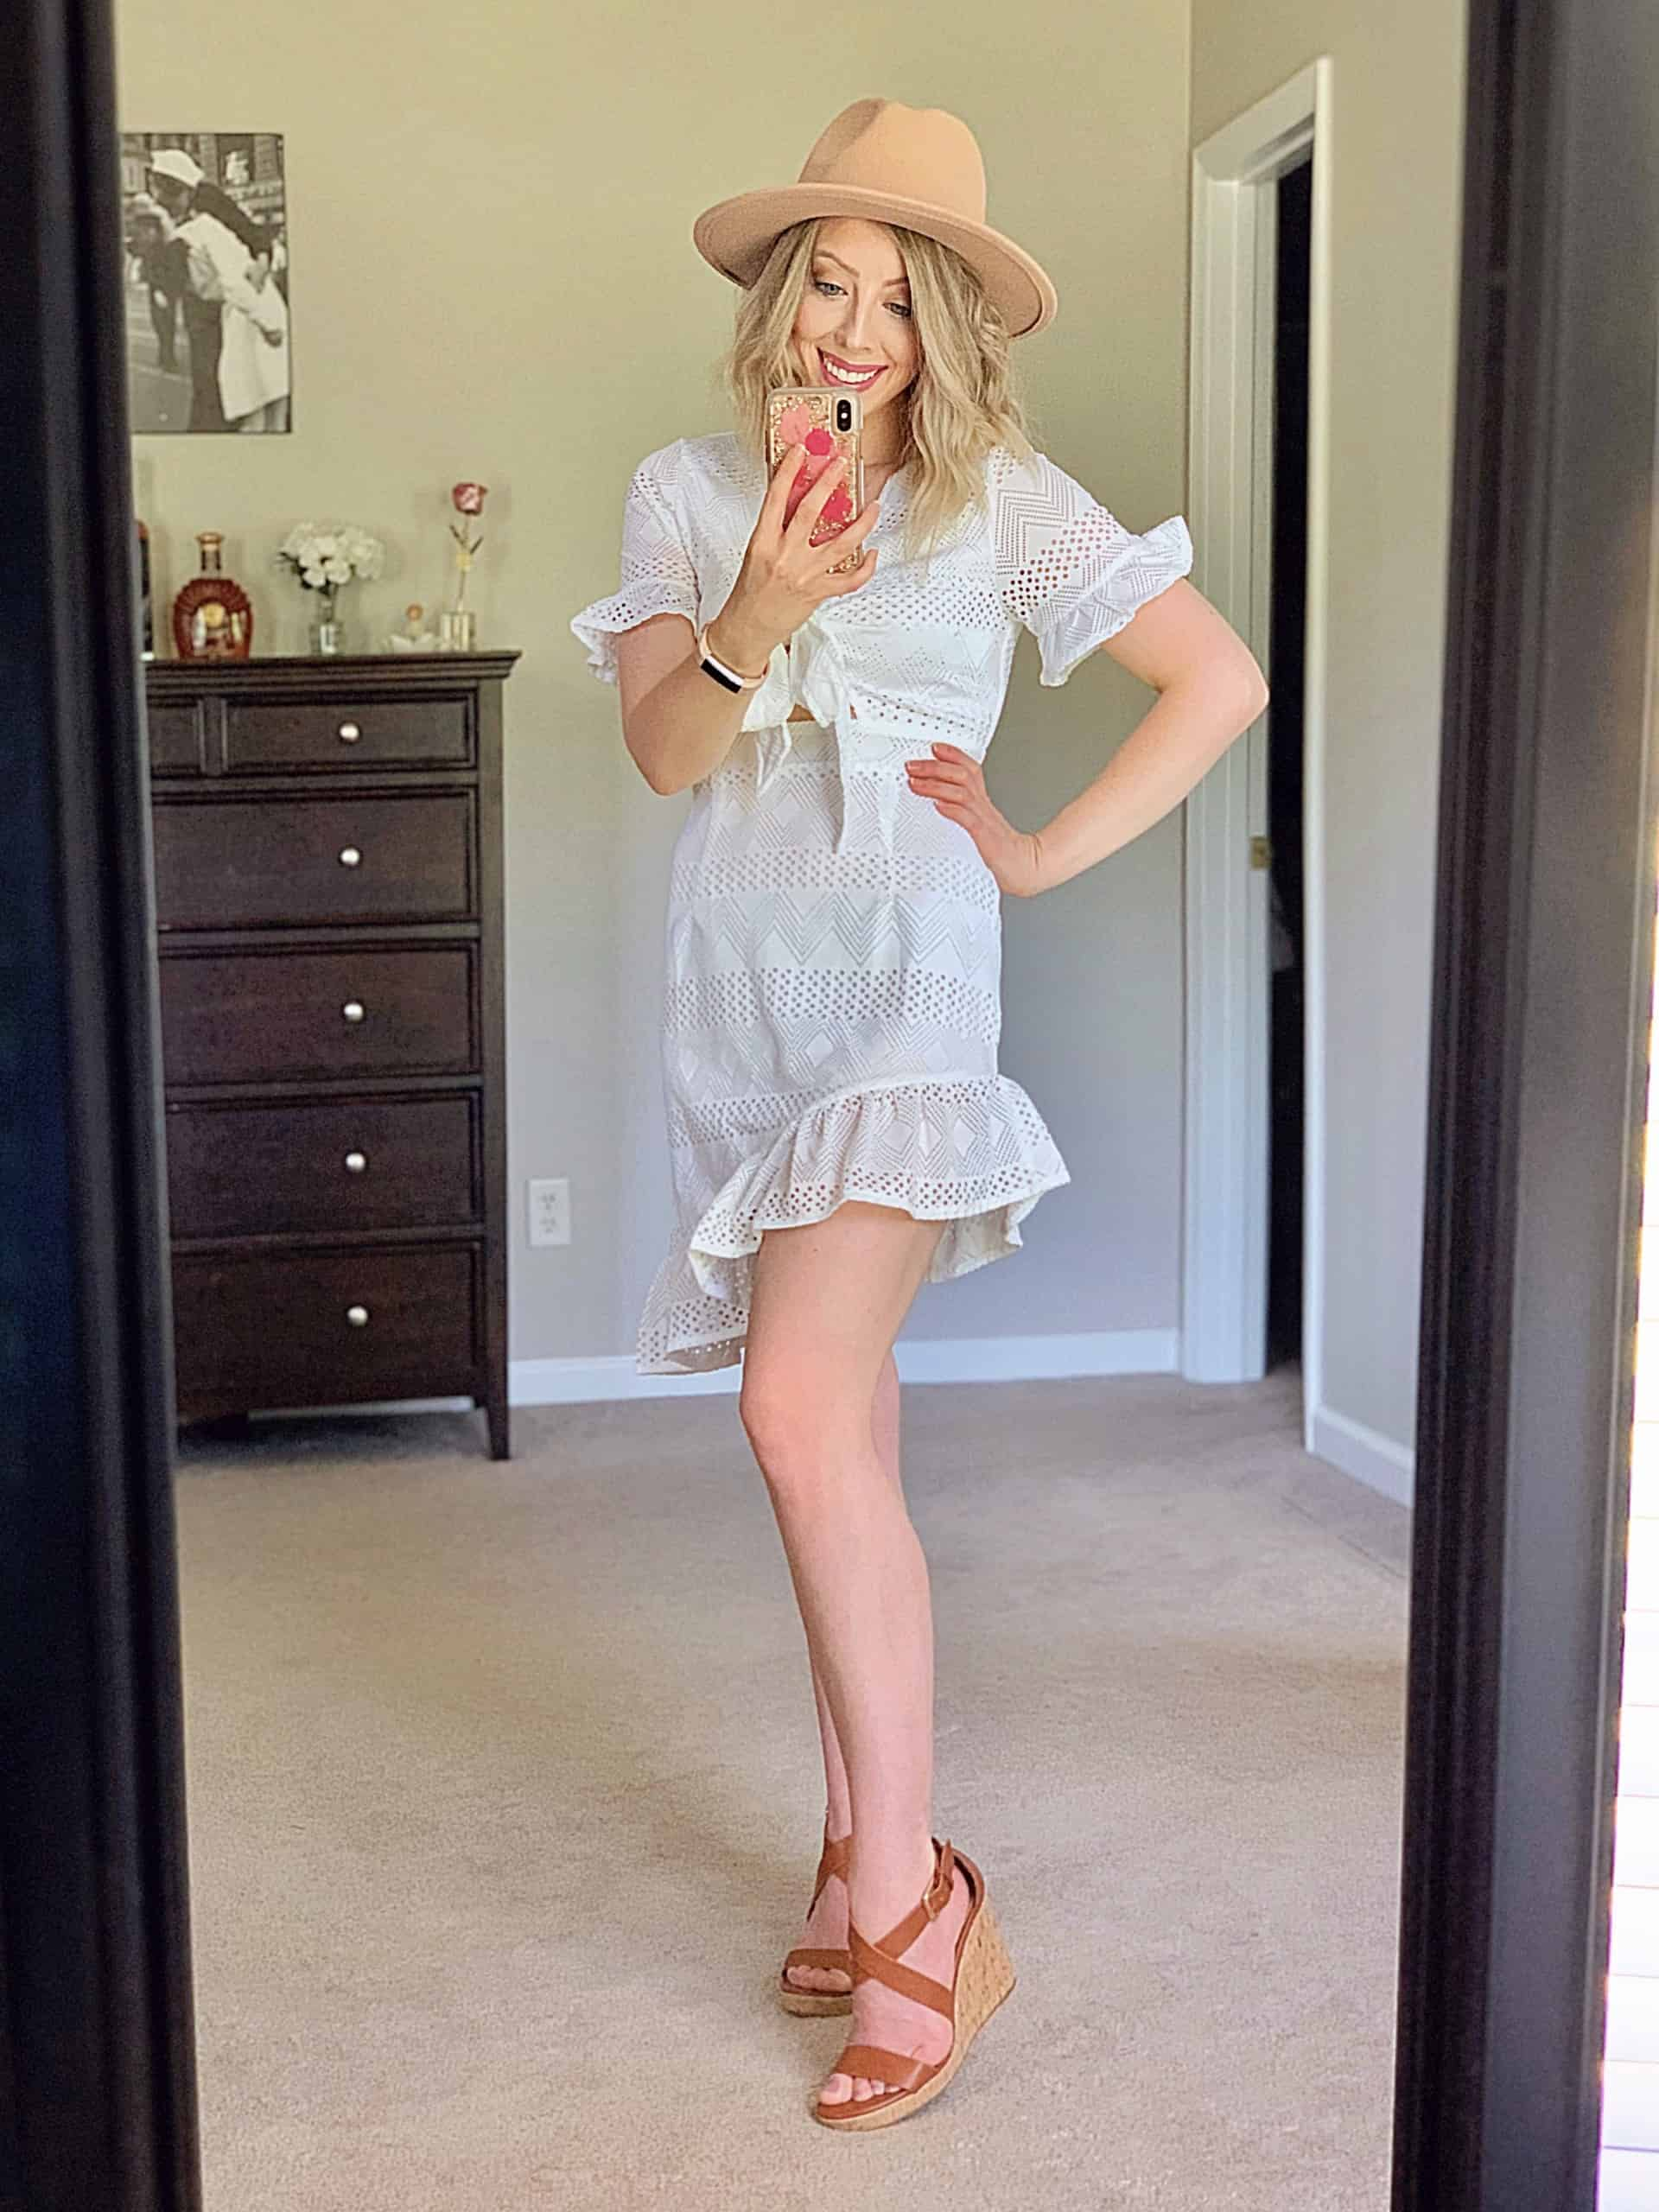 Want to add some cute summer dresses to your wardrobe? Check out my Amazon Haul of 7 Cute and Affordable Summer Dresses, all of which are under $30! From cute maxi dresses, casual dresses, floral dresses, and more, these budget-friendly dresses are perfect for wearing this summer to the beach or on a date night! #amazonfashion #fashion #dresses